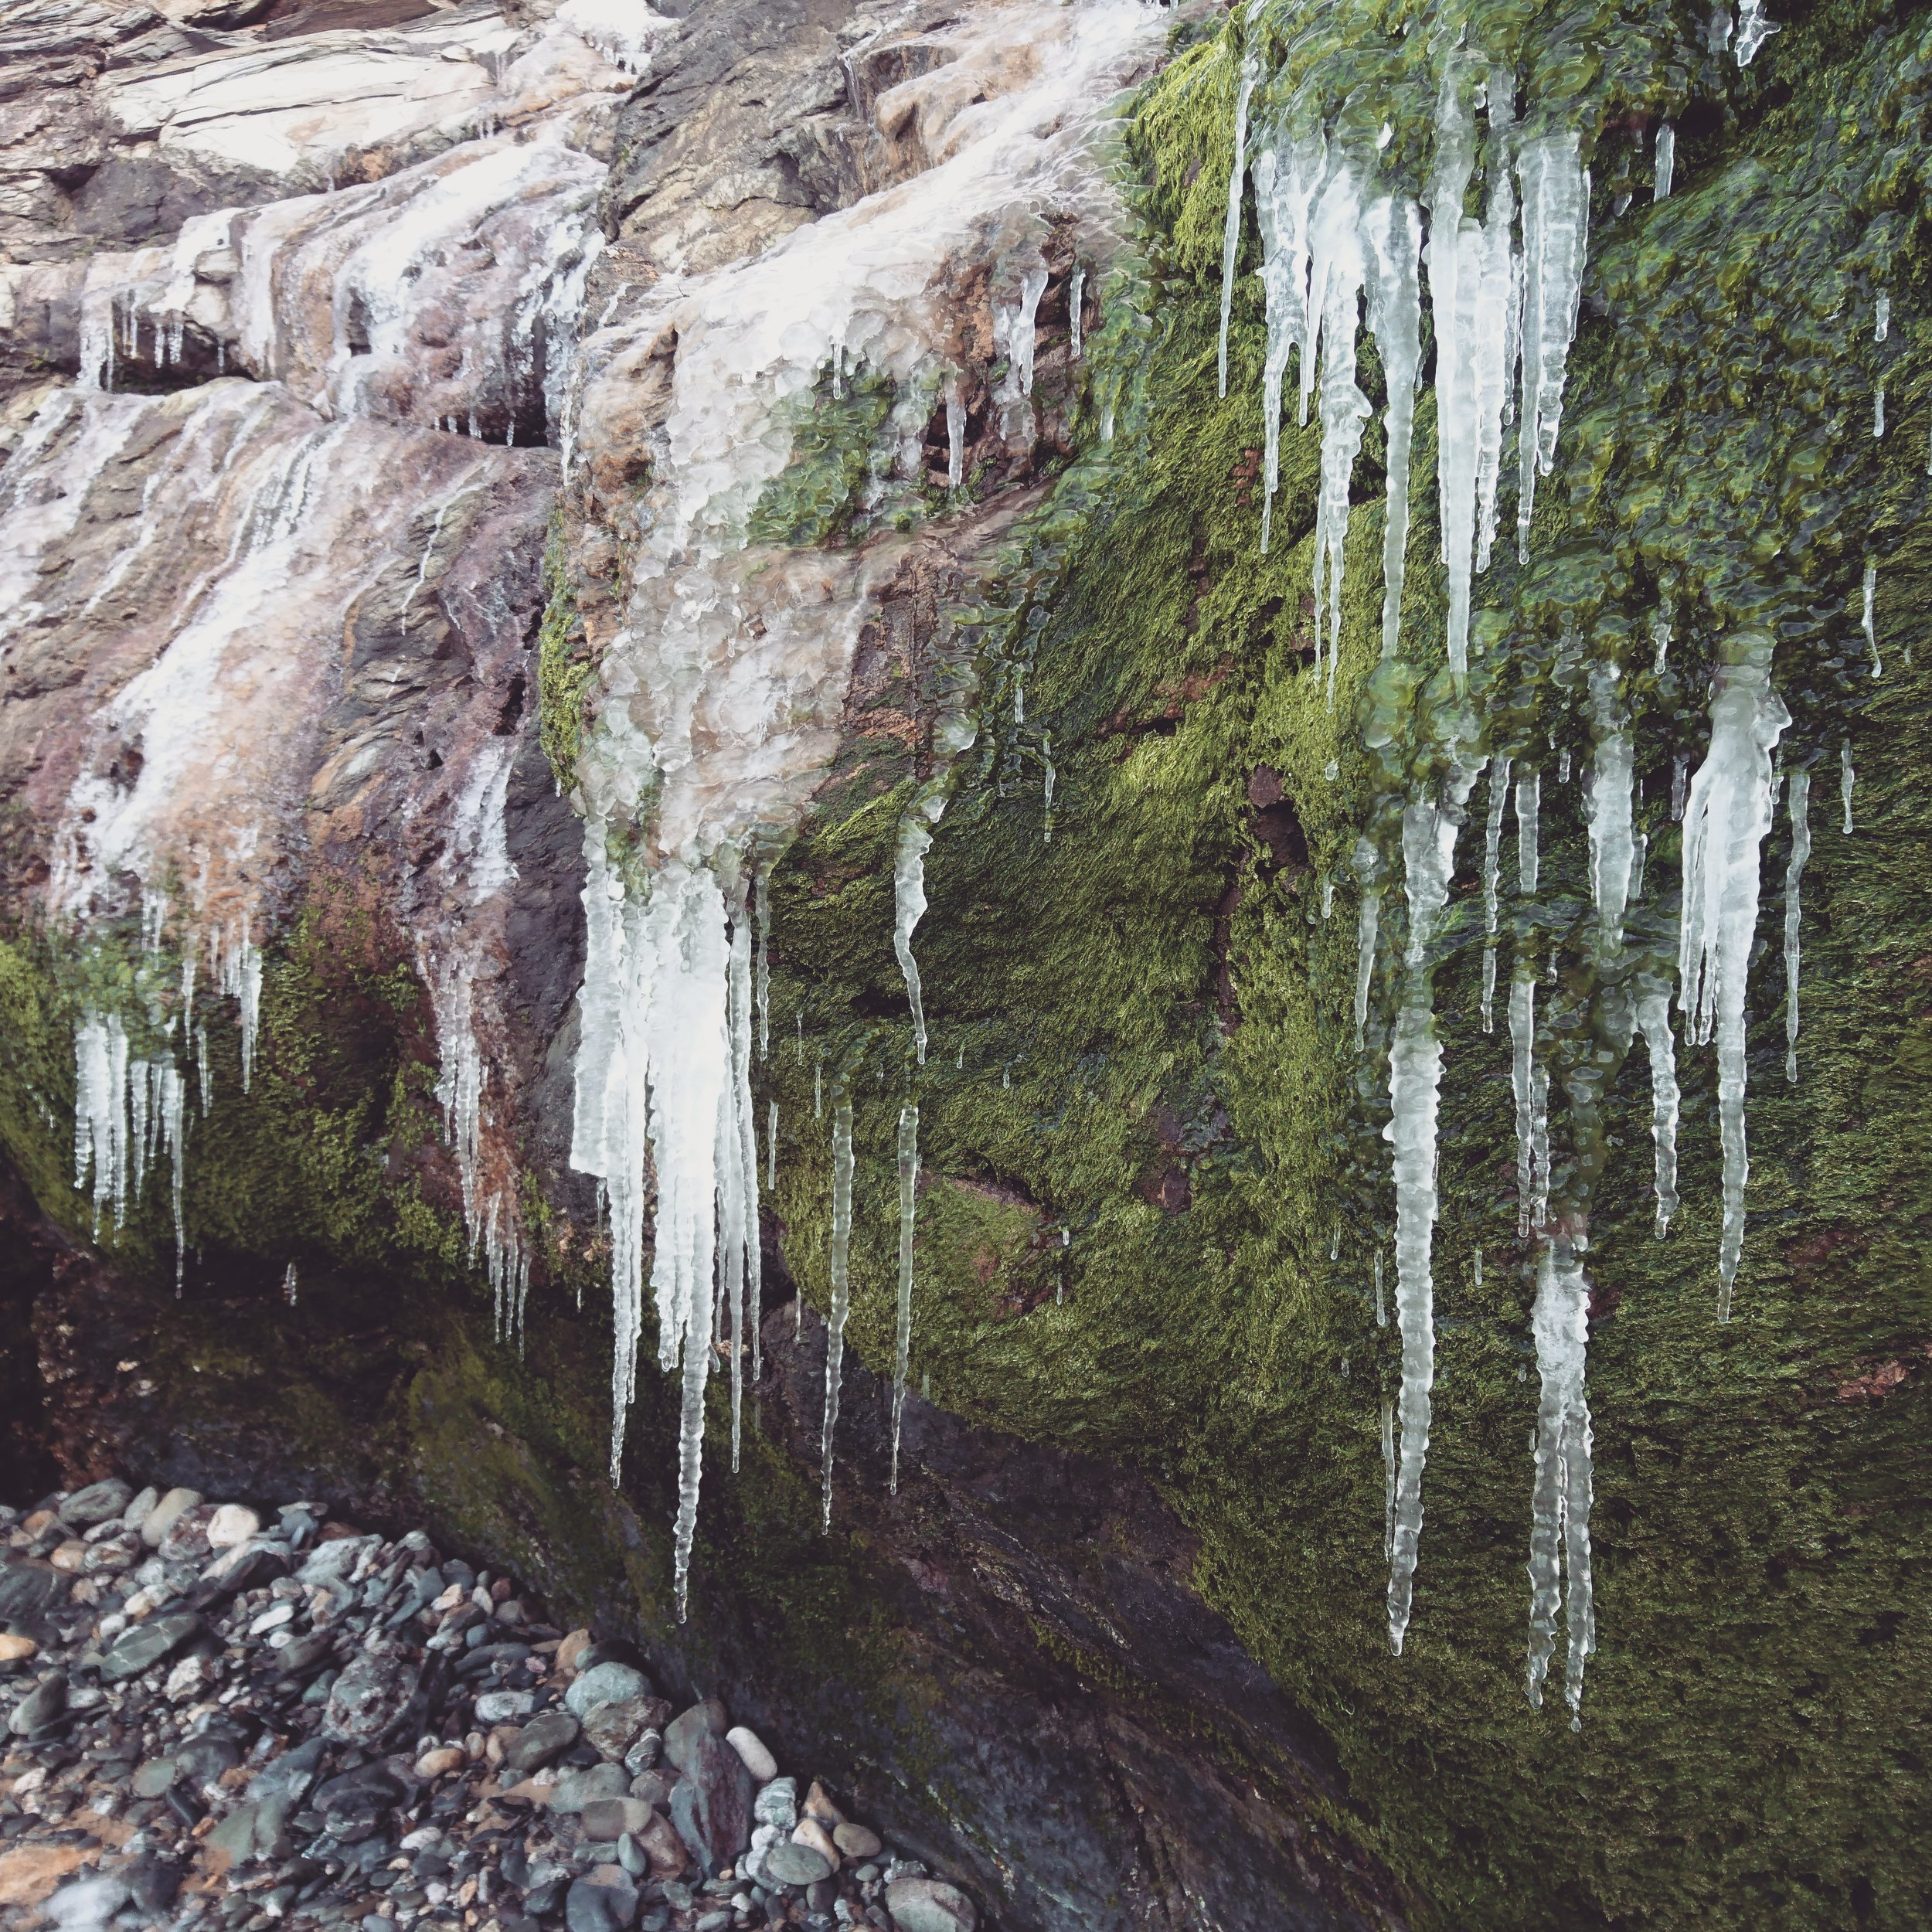 Dangling Icicles